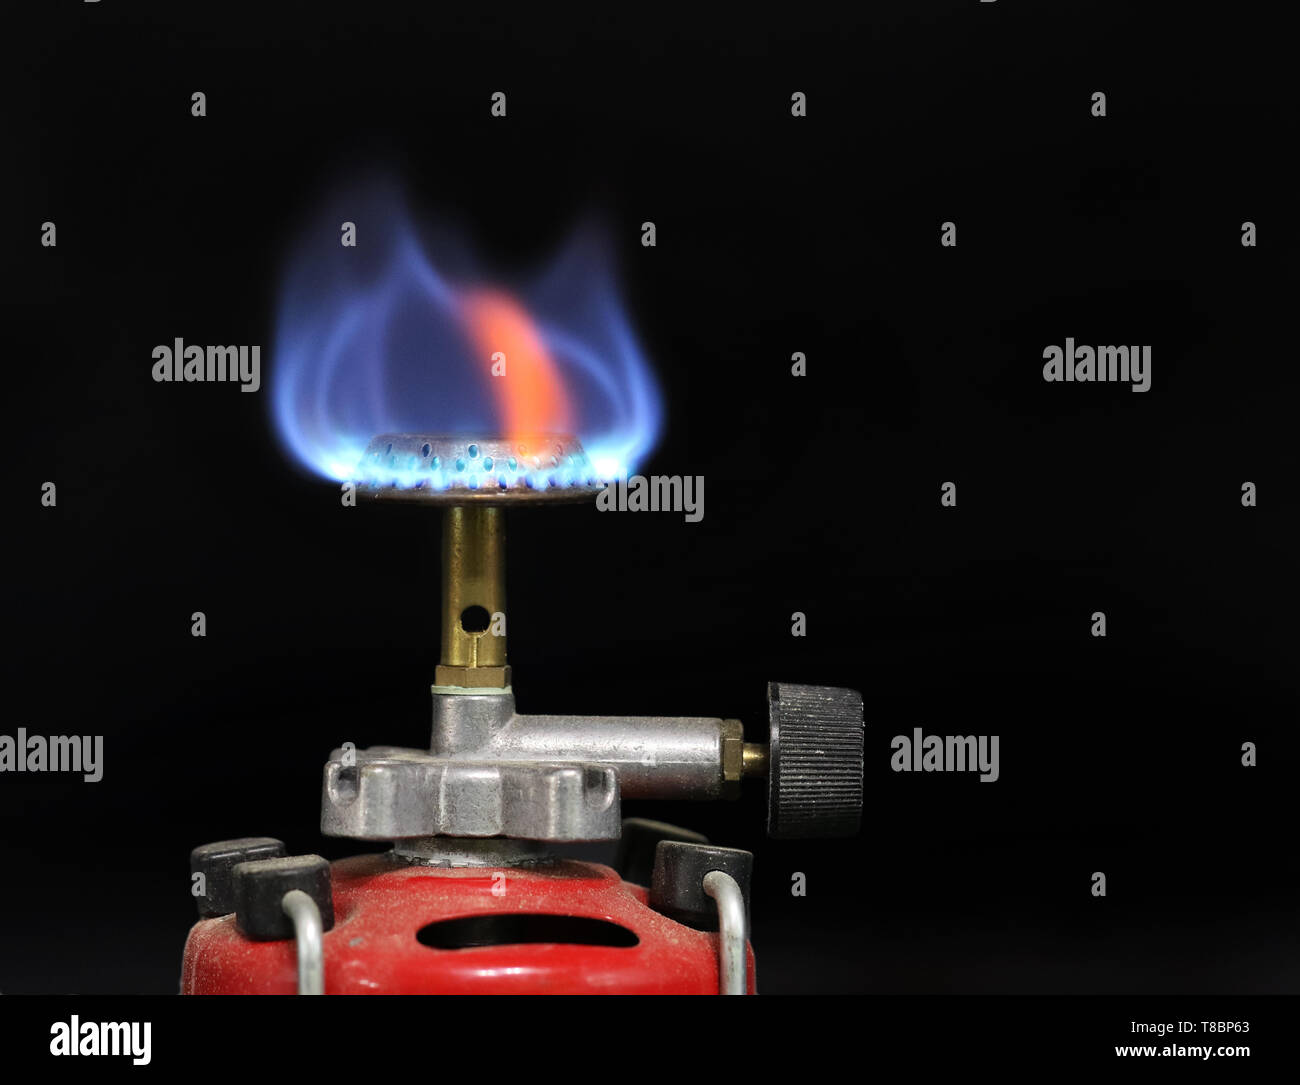 Flame of a gas burner, cartridge burner on black background with copy space - Stock Image